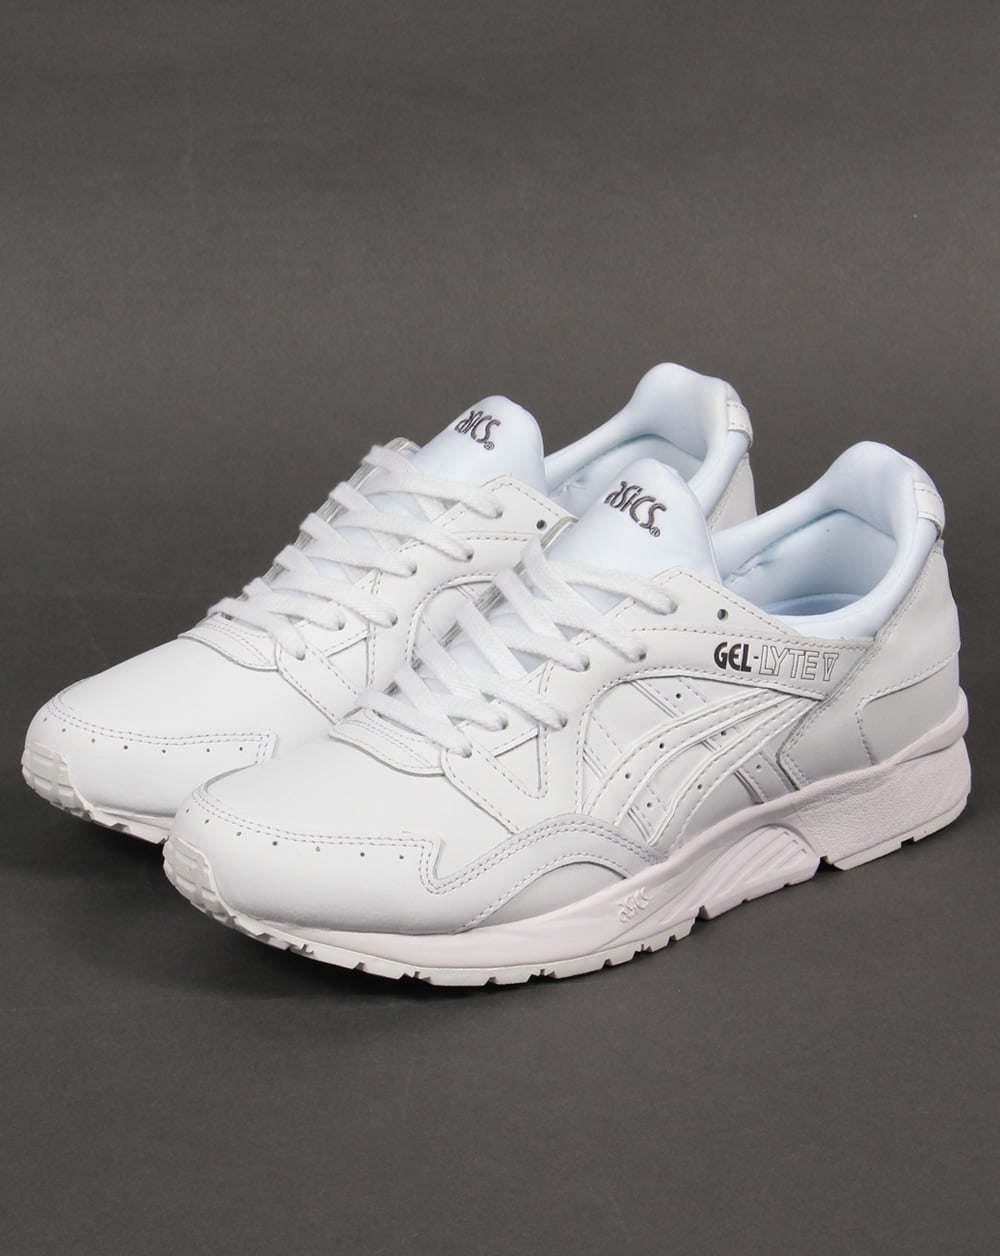 asics gel lyte v leather trainers white 5 shoes runners. Black Bedroom Furniture Sets. Home Design Ideas